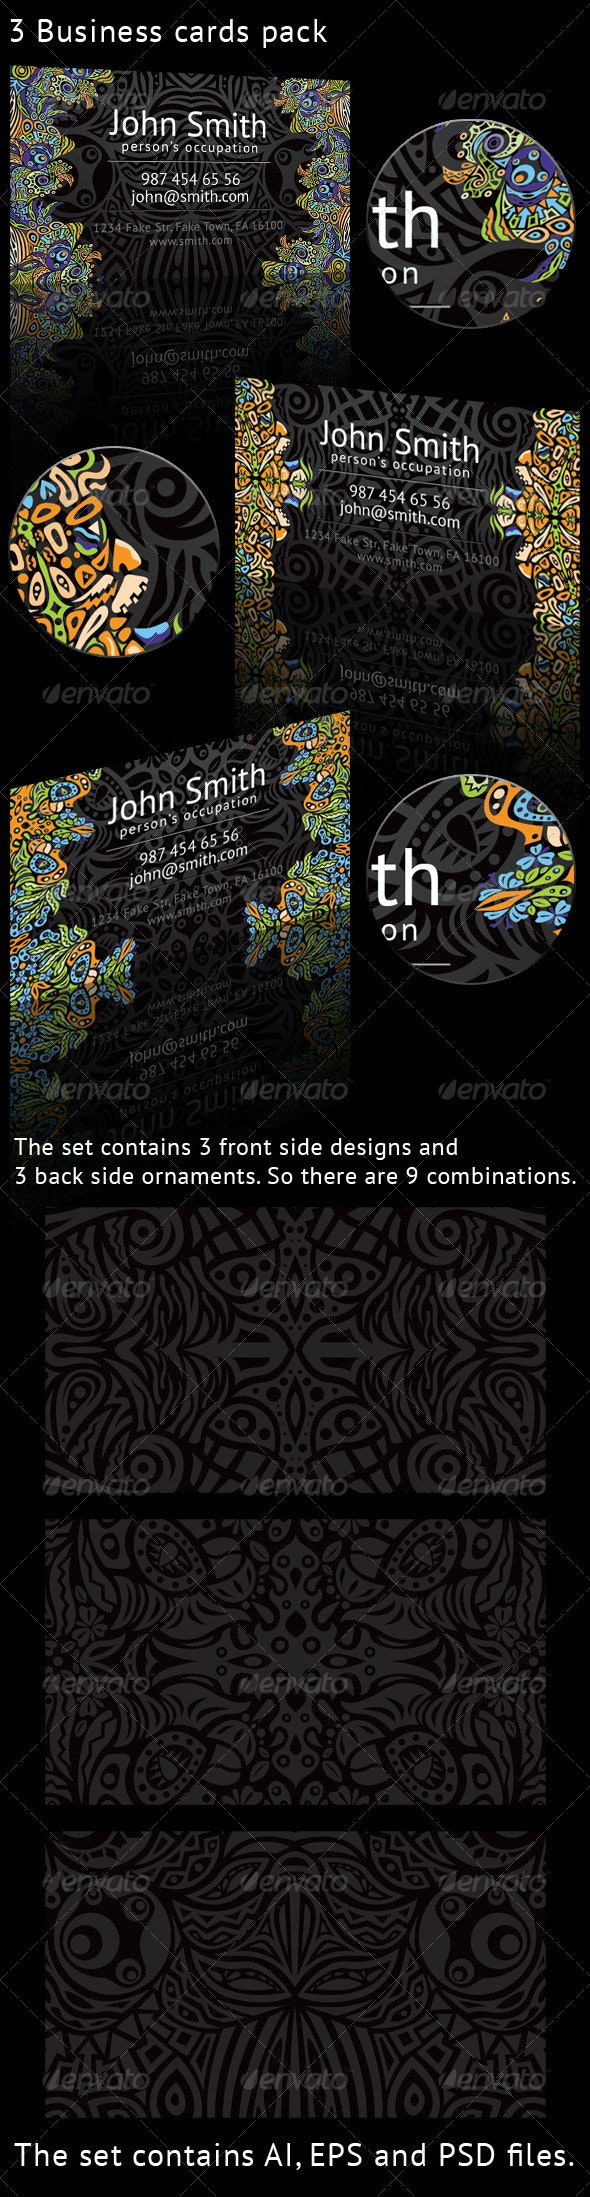 Psychedelic Ornament 3 Business Cards Pack - Creative Business Cards